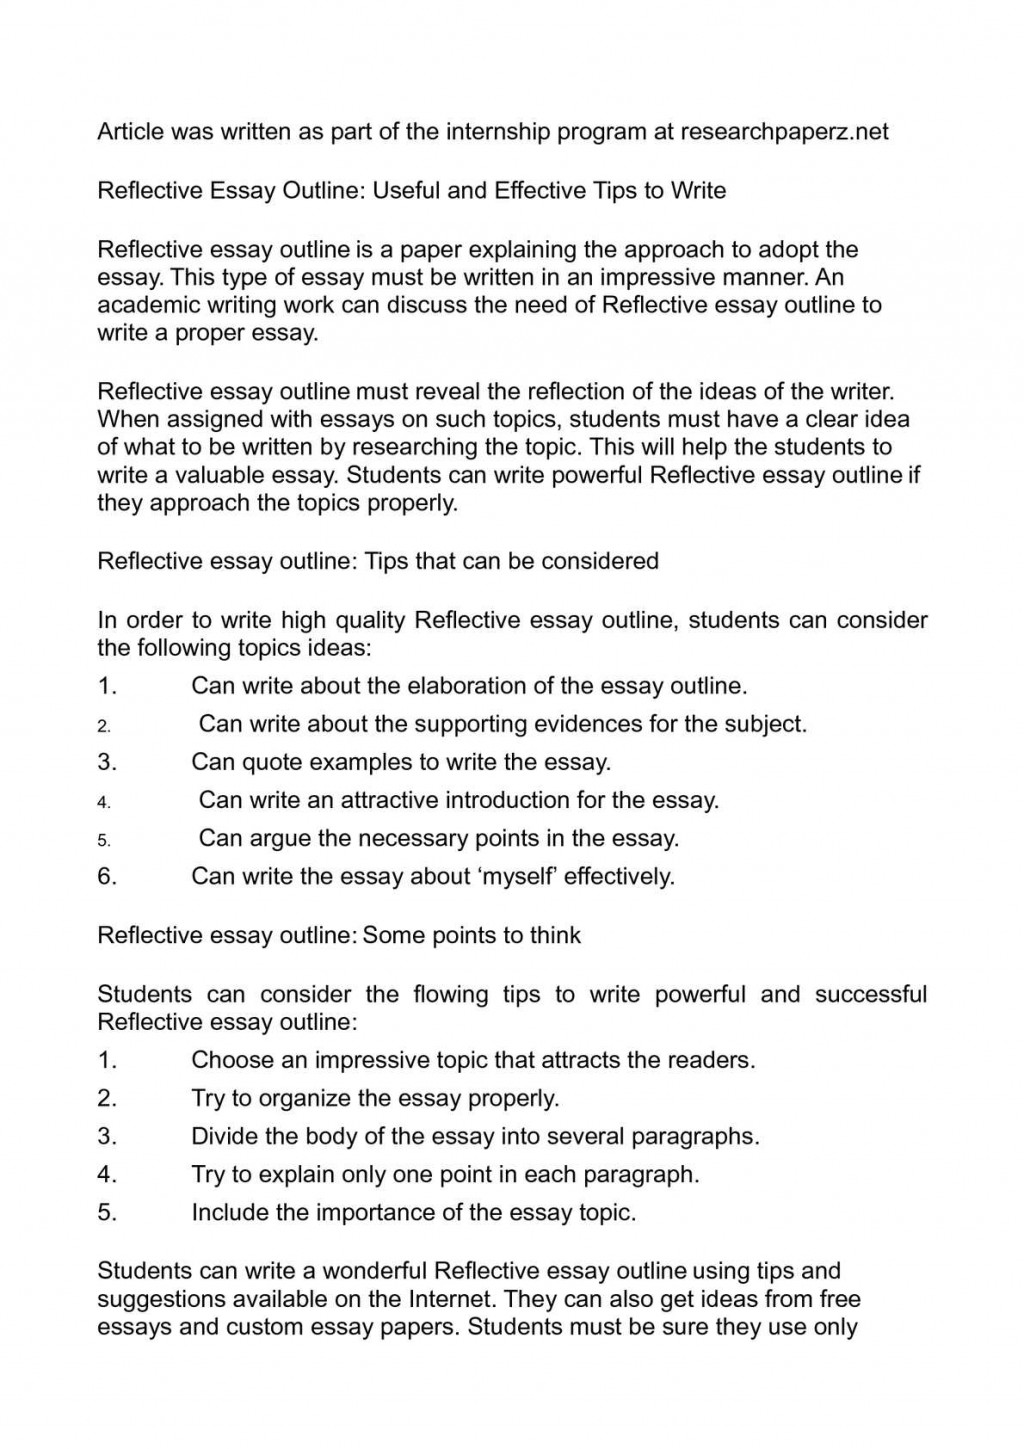 012 Reflective Essay Topics P1 Fearsome Grade 8 Nursing Sample Large